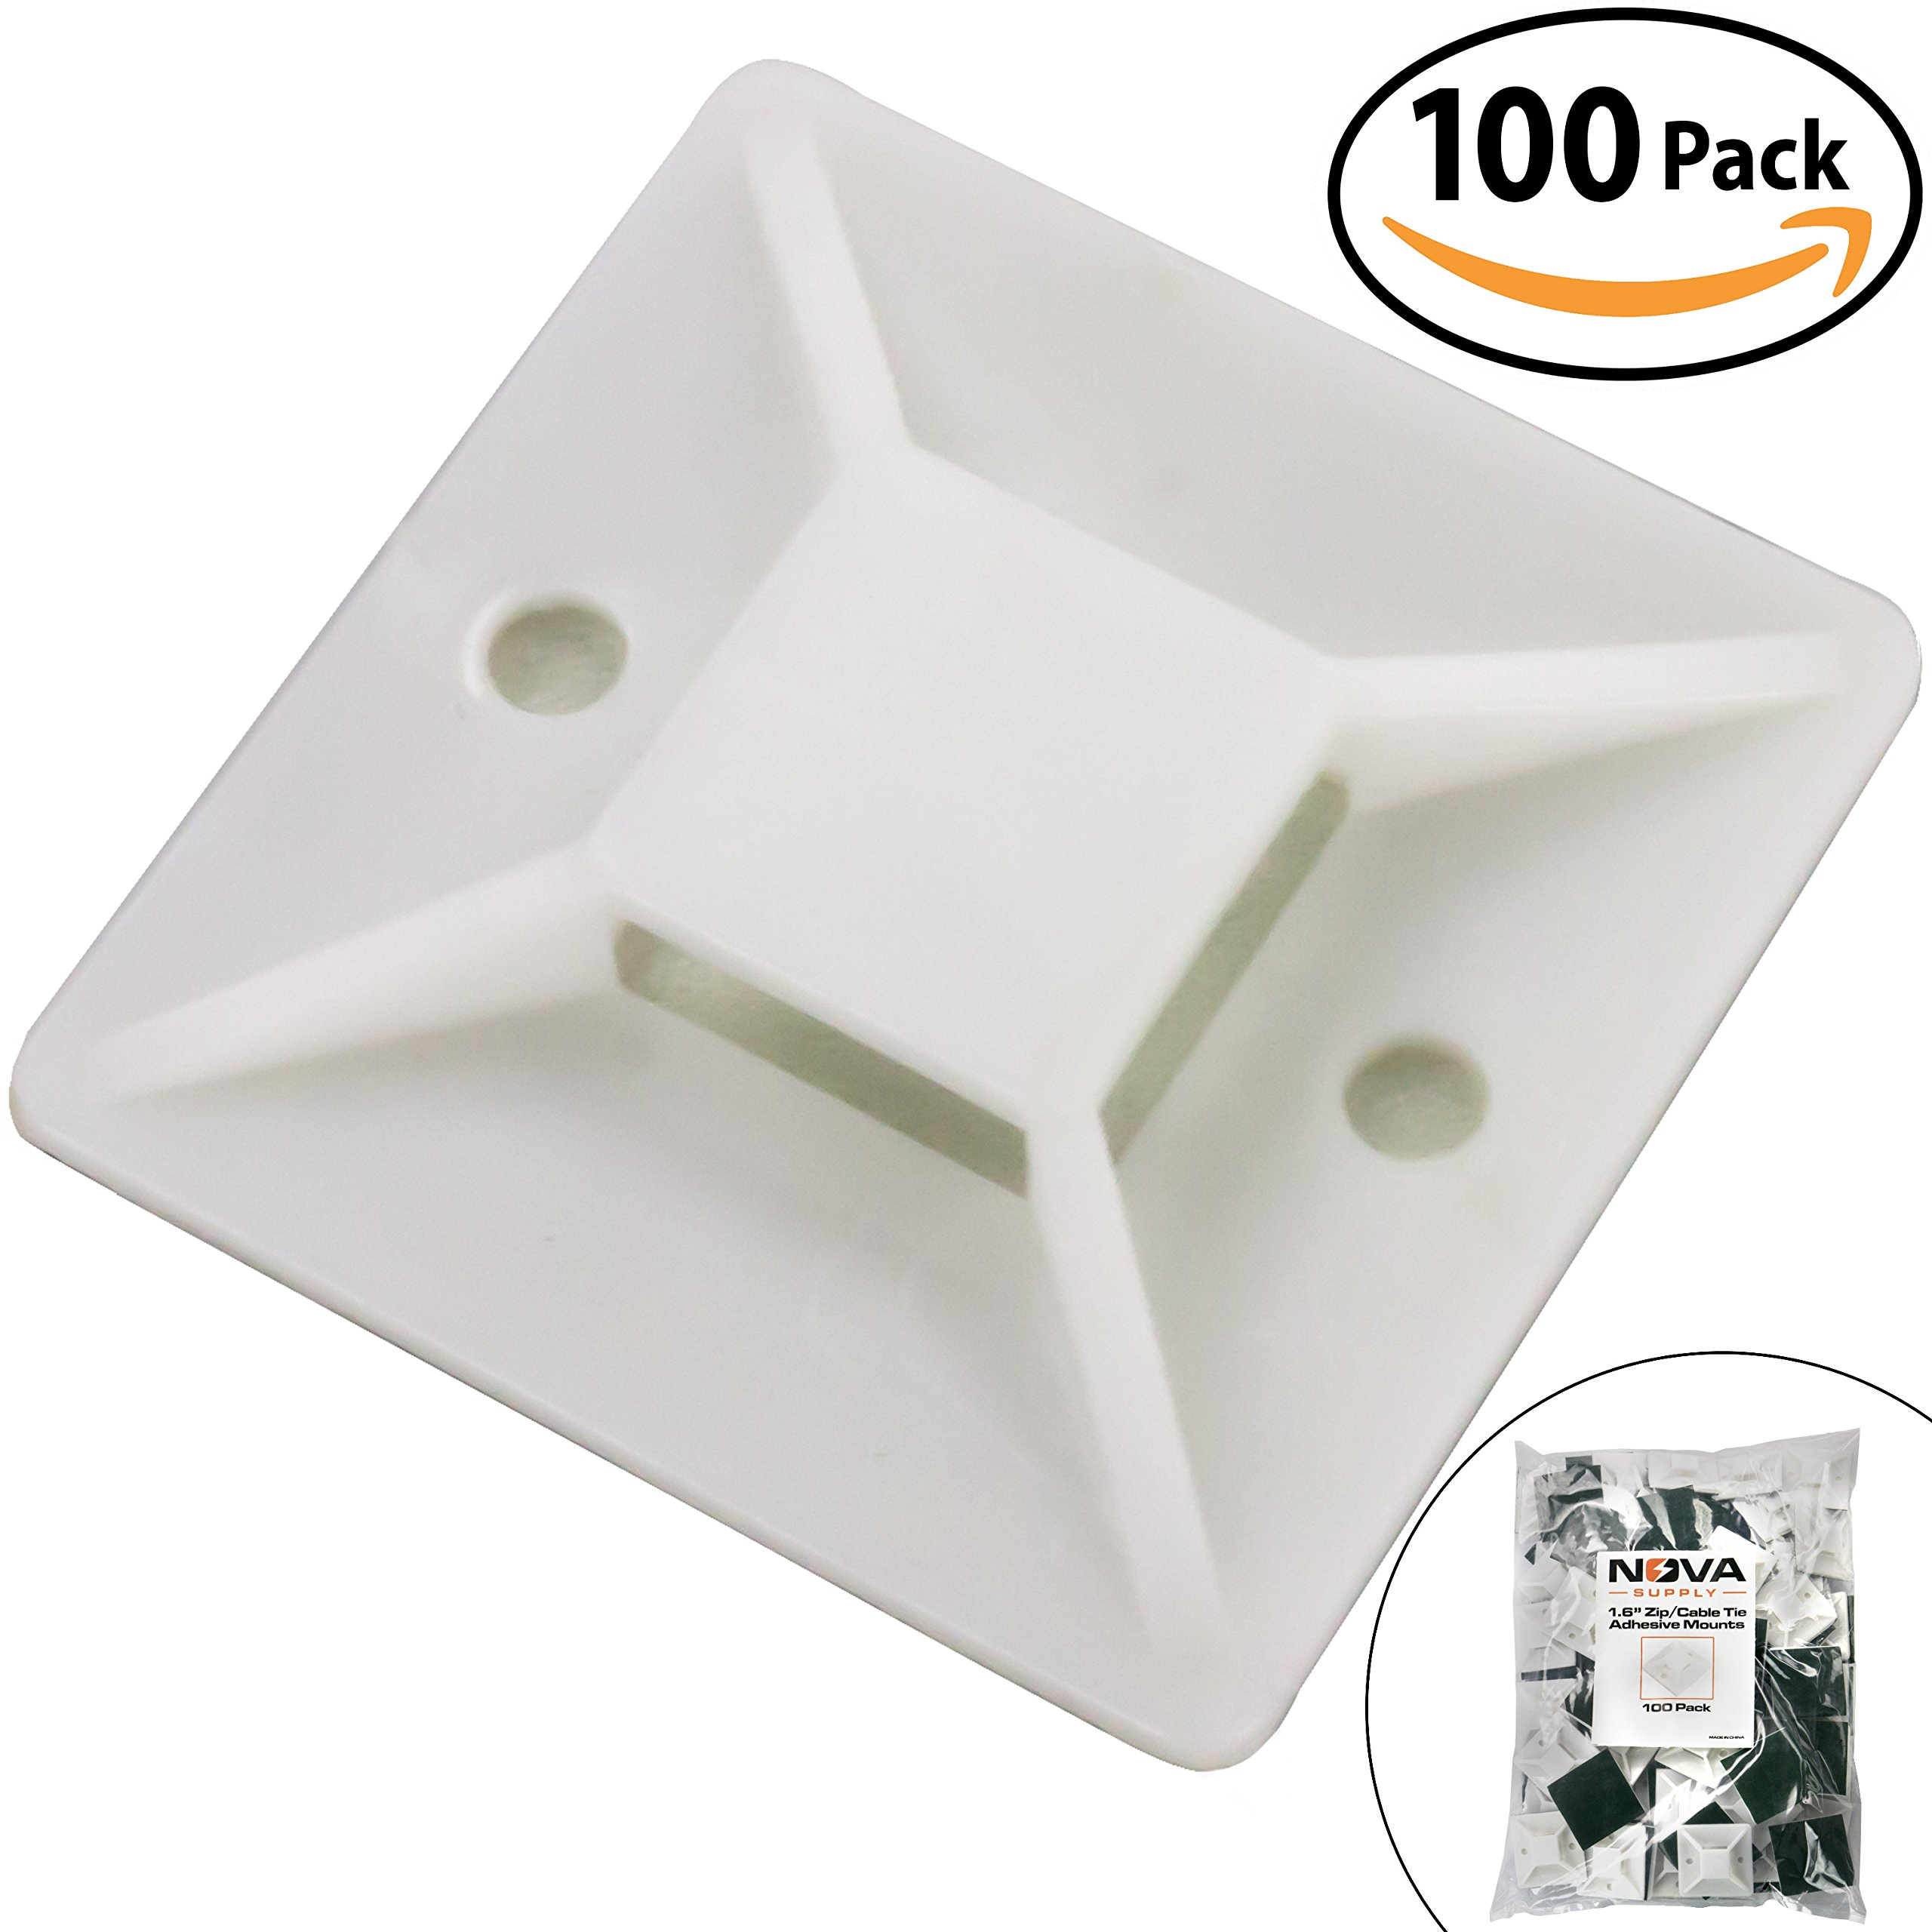 Super-Adhesive X-Large Cable Tie Mounts 100 Pack For Fast, Frustration-Free Wire Management. Anchor These Zip Tie Bases Tools-Free With Sticky Backs Or Use Screw-Holes For Permanent Hold